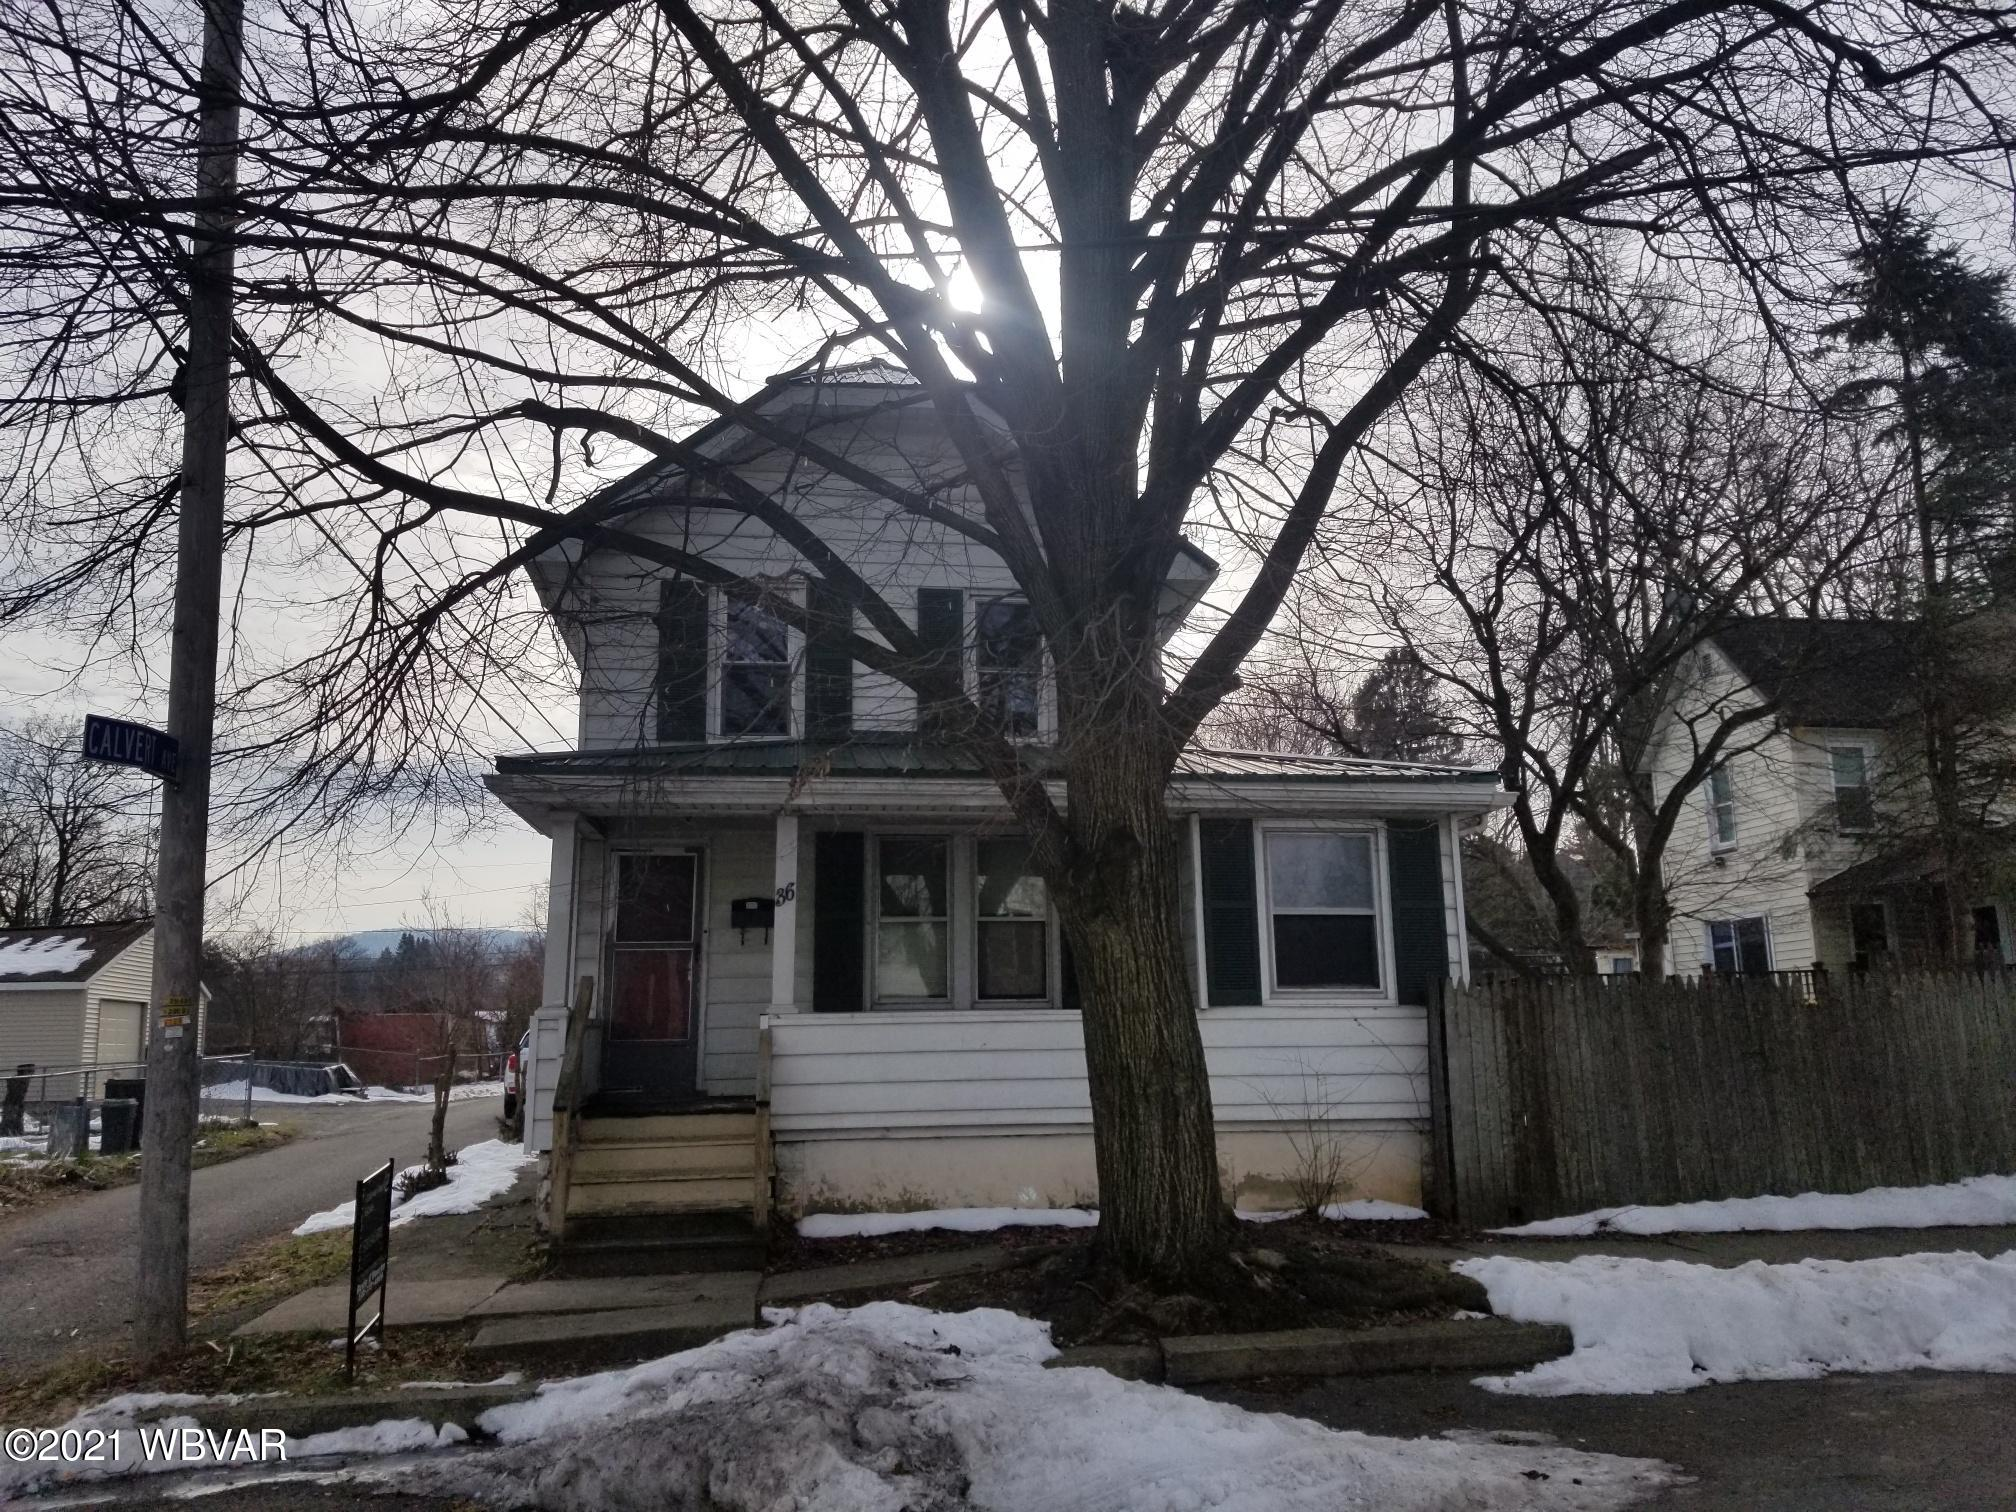 36 ELDRED STREET, Williamsport, PA 17701, 3 Bedrooms Bedrooms, ,2 BathroomsBathrooms,Residential,For sale,ELDRED,WB-91739